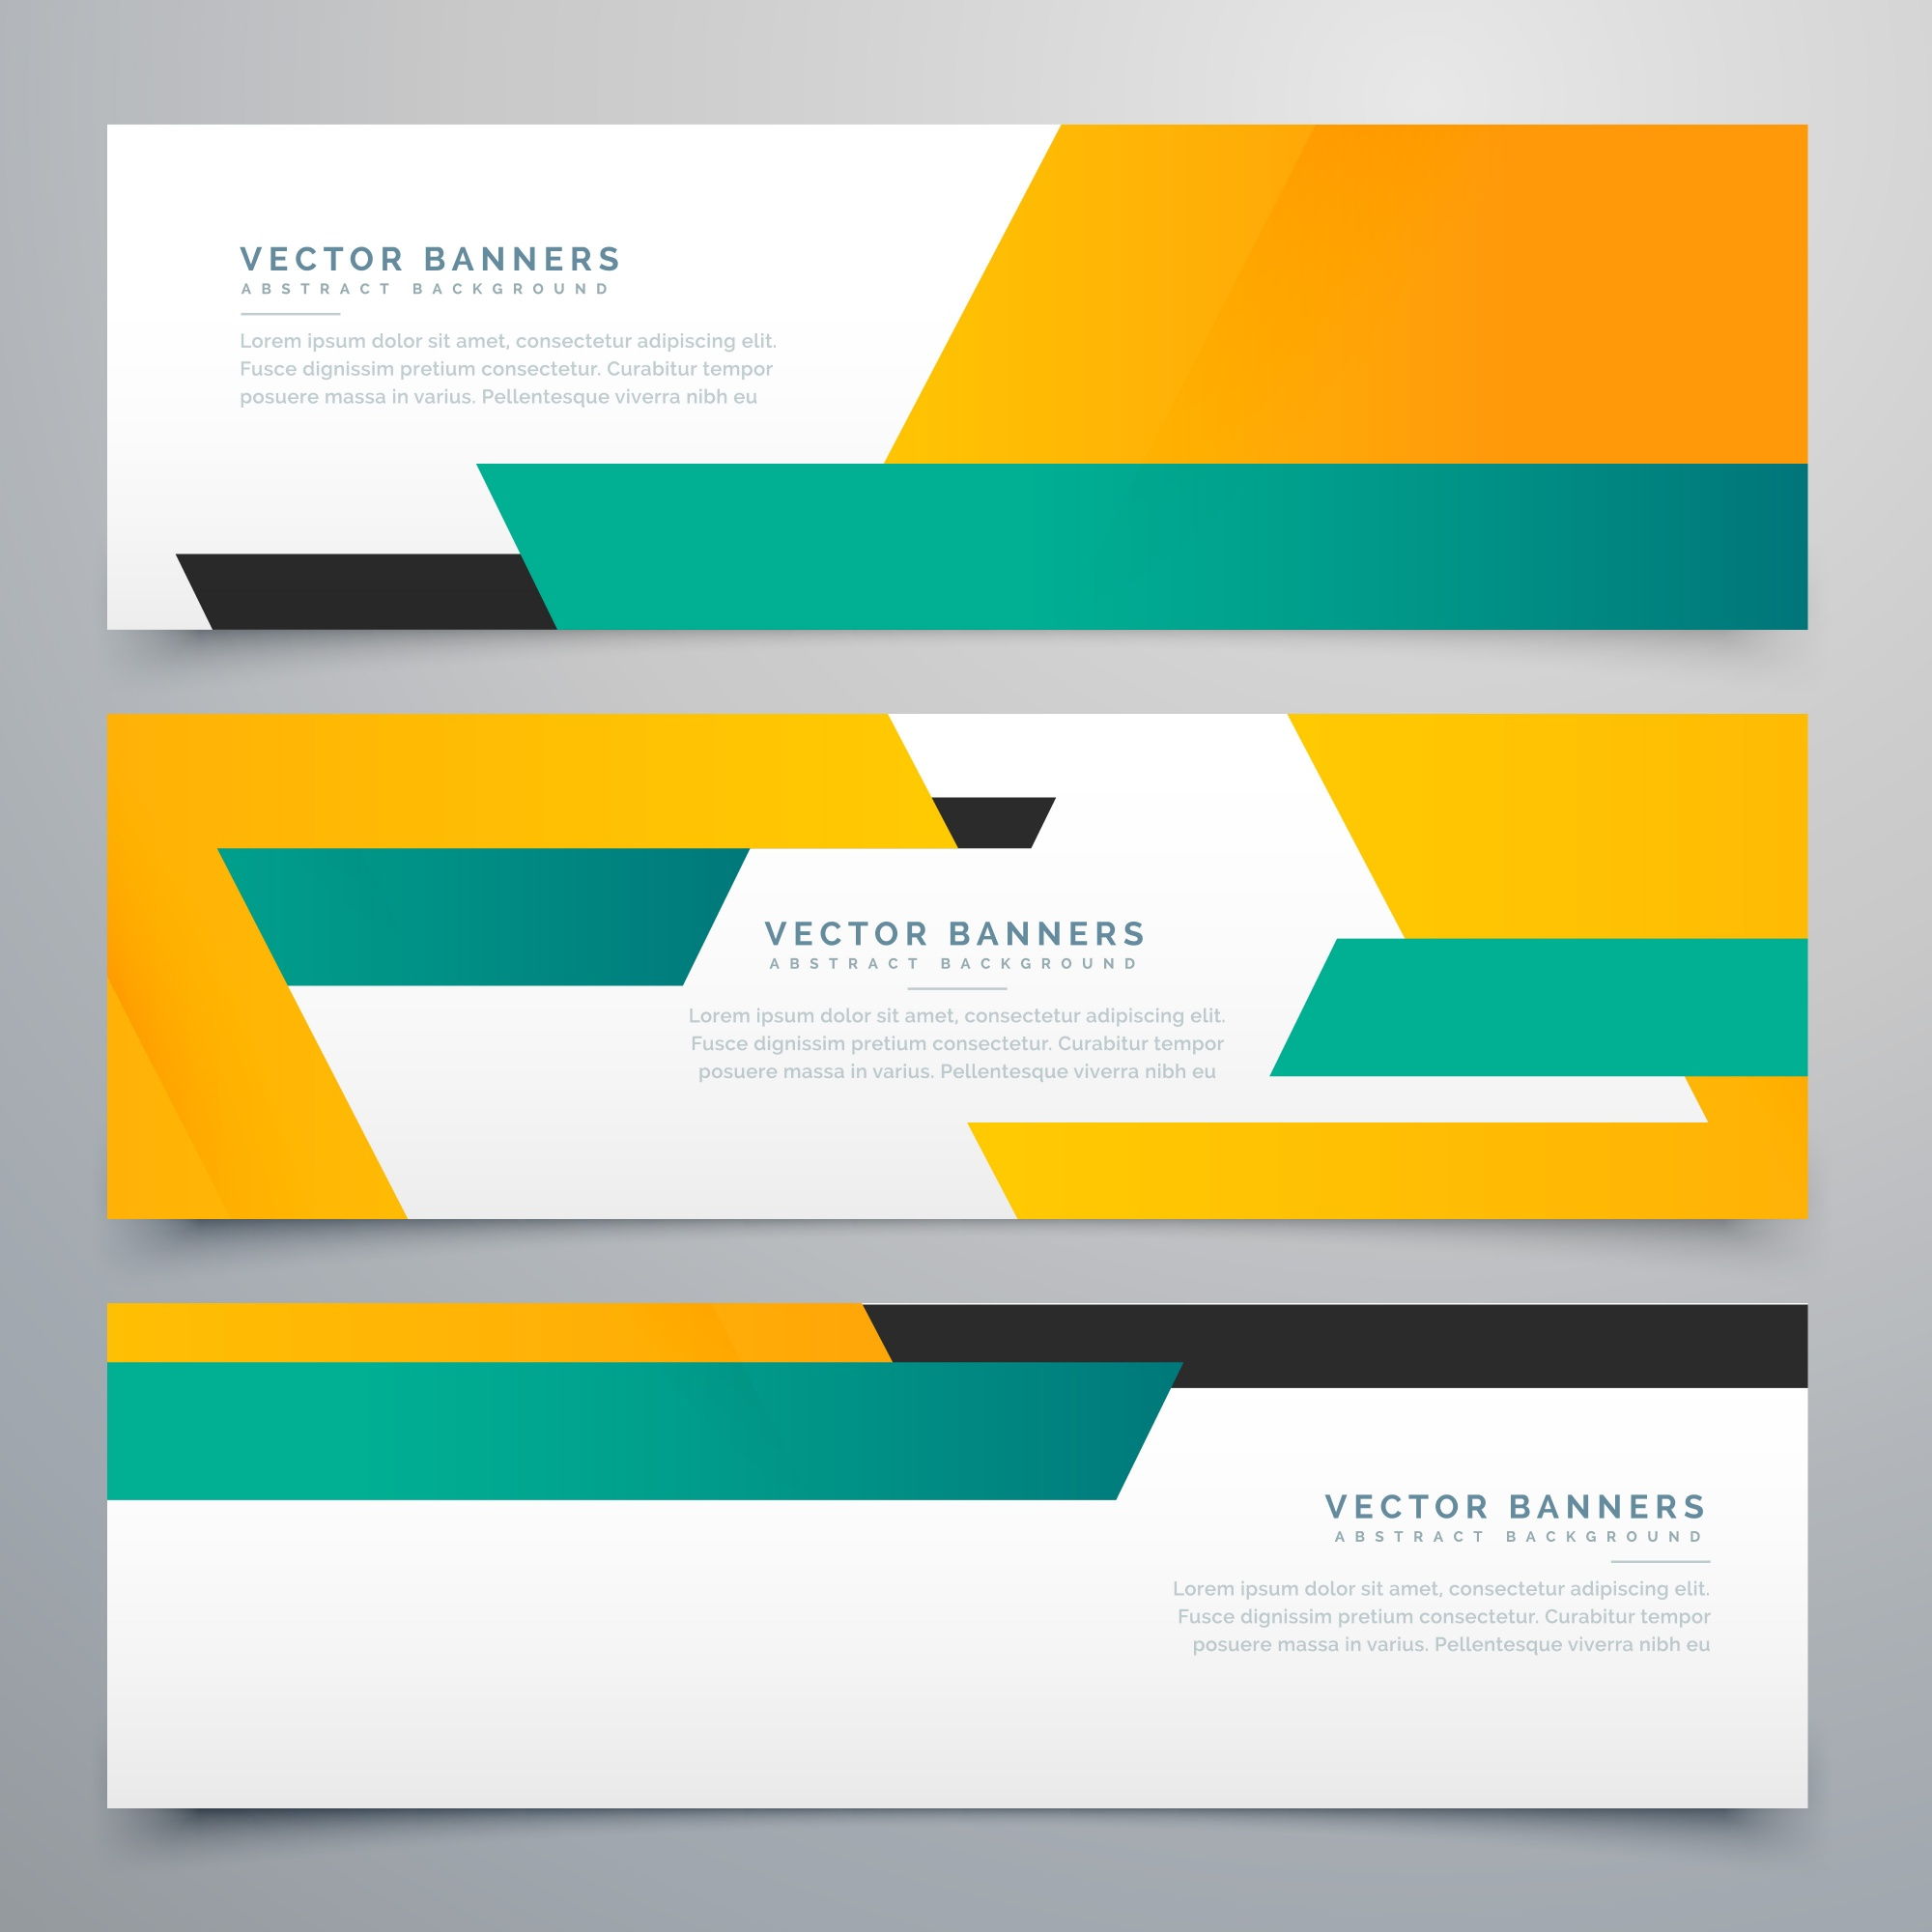 Geometric banners, teal and orange